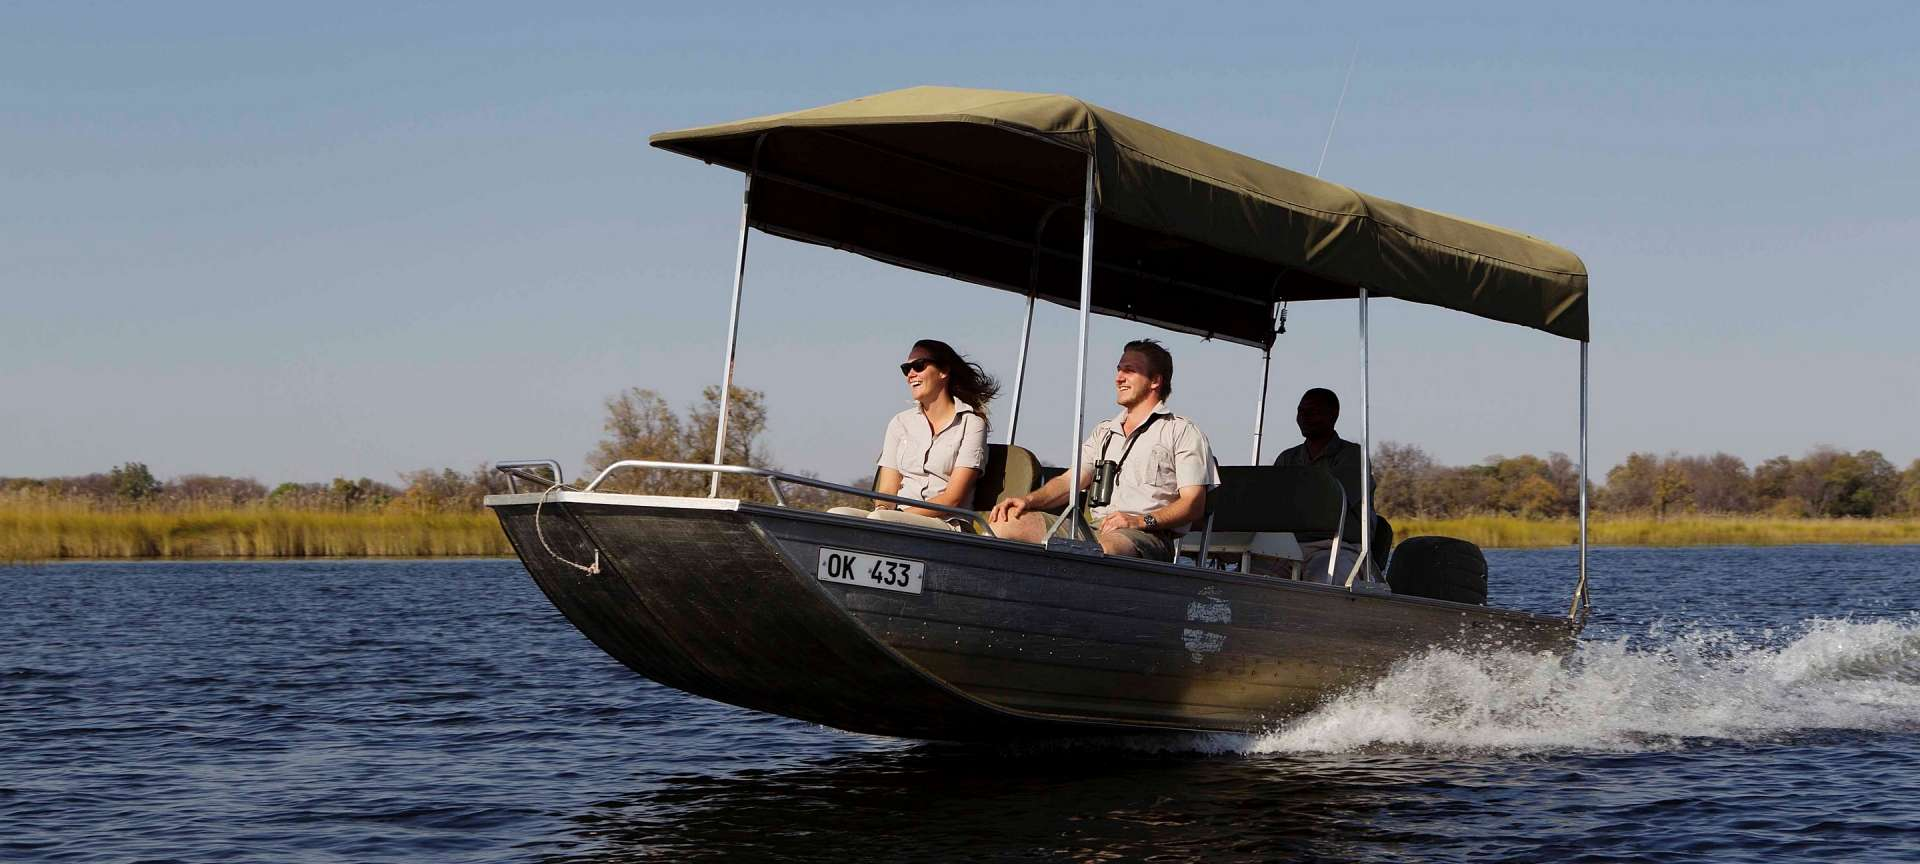 Boat safaris allow quick access to a number of wonderful open lagoons